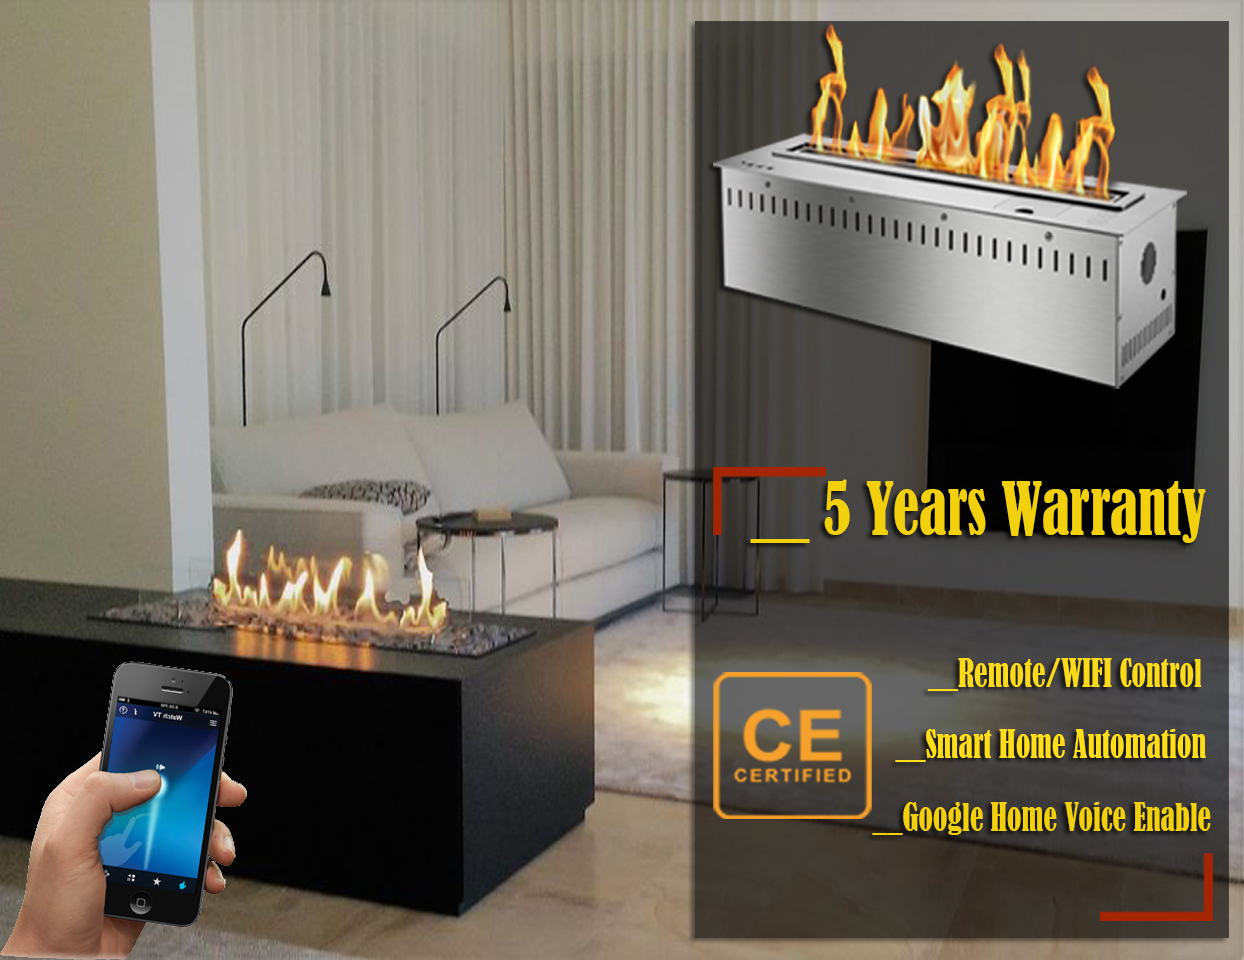 Hot Sale 60 Inches Biofuel Smart Burner Insert Ethanol Chimney Remote Control